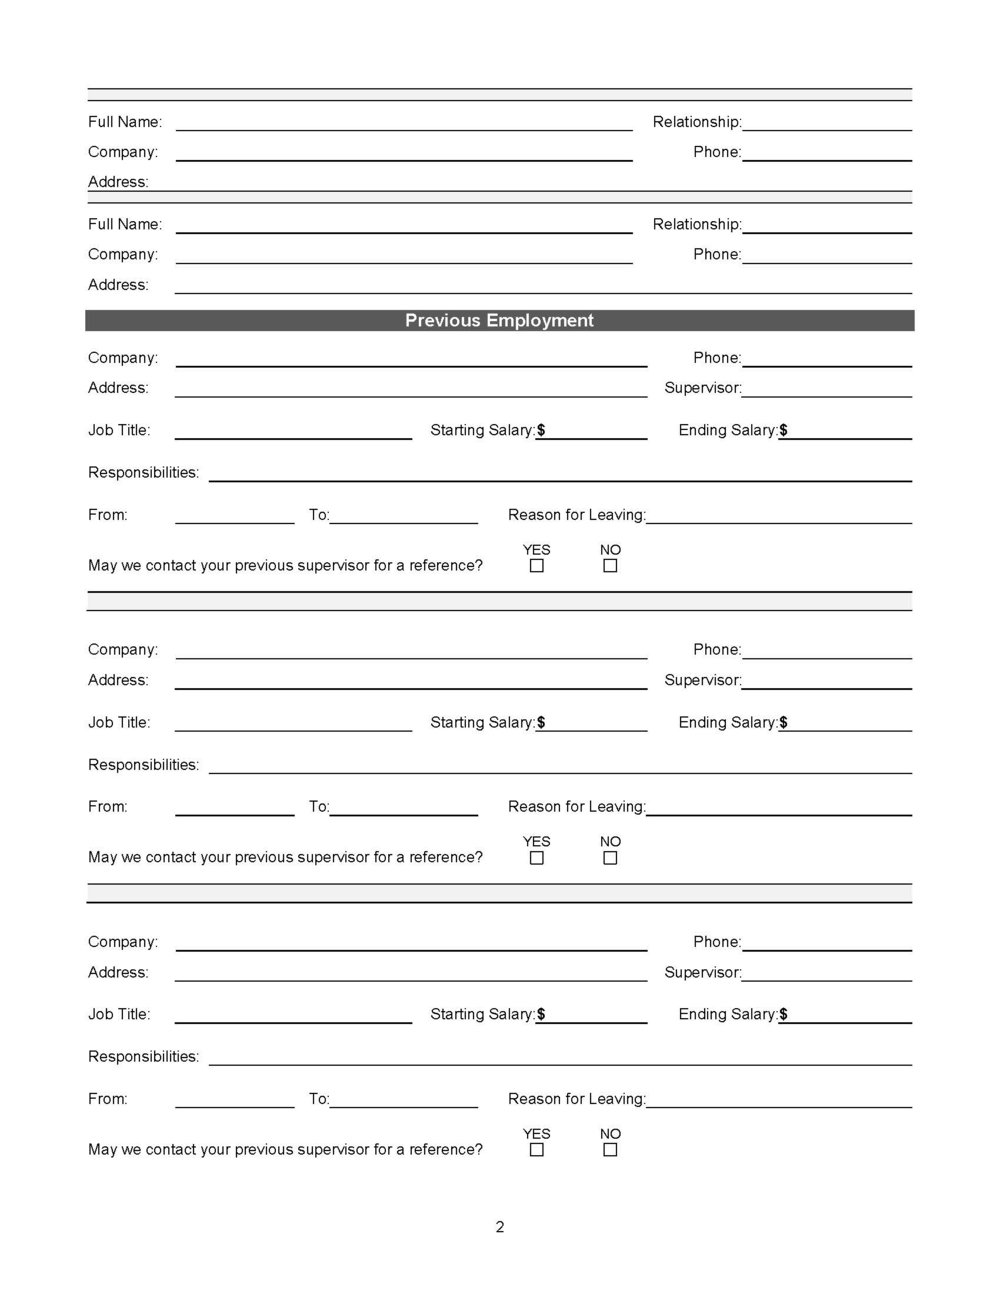 TFN General Application_Page_2.jpg